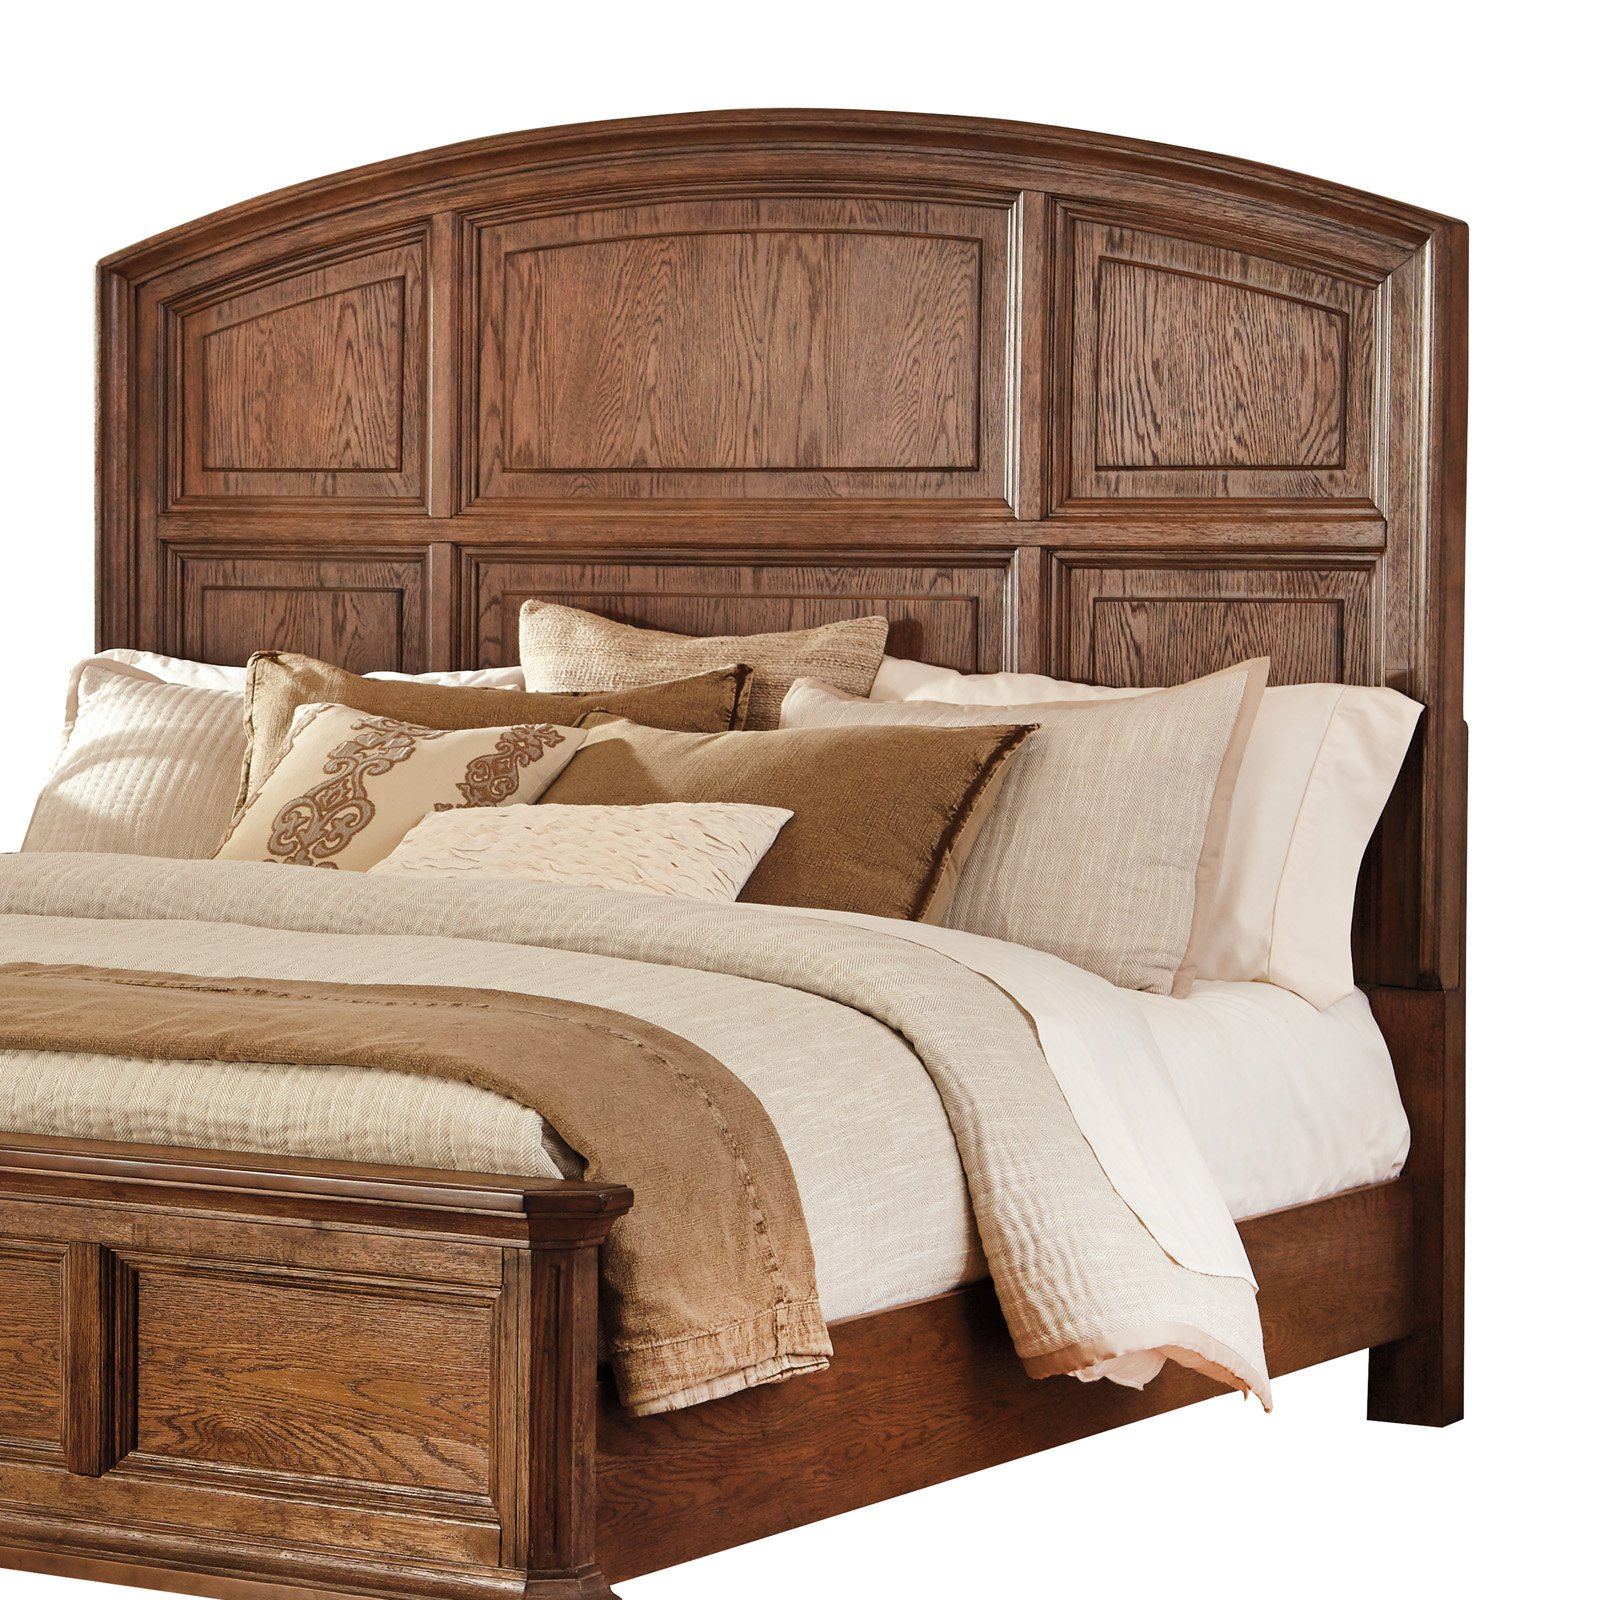 Signature Design by Ashley Maeleen Arched Wood Panel Headboard